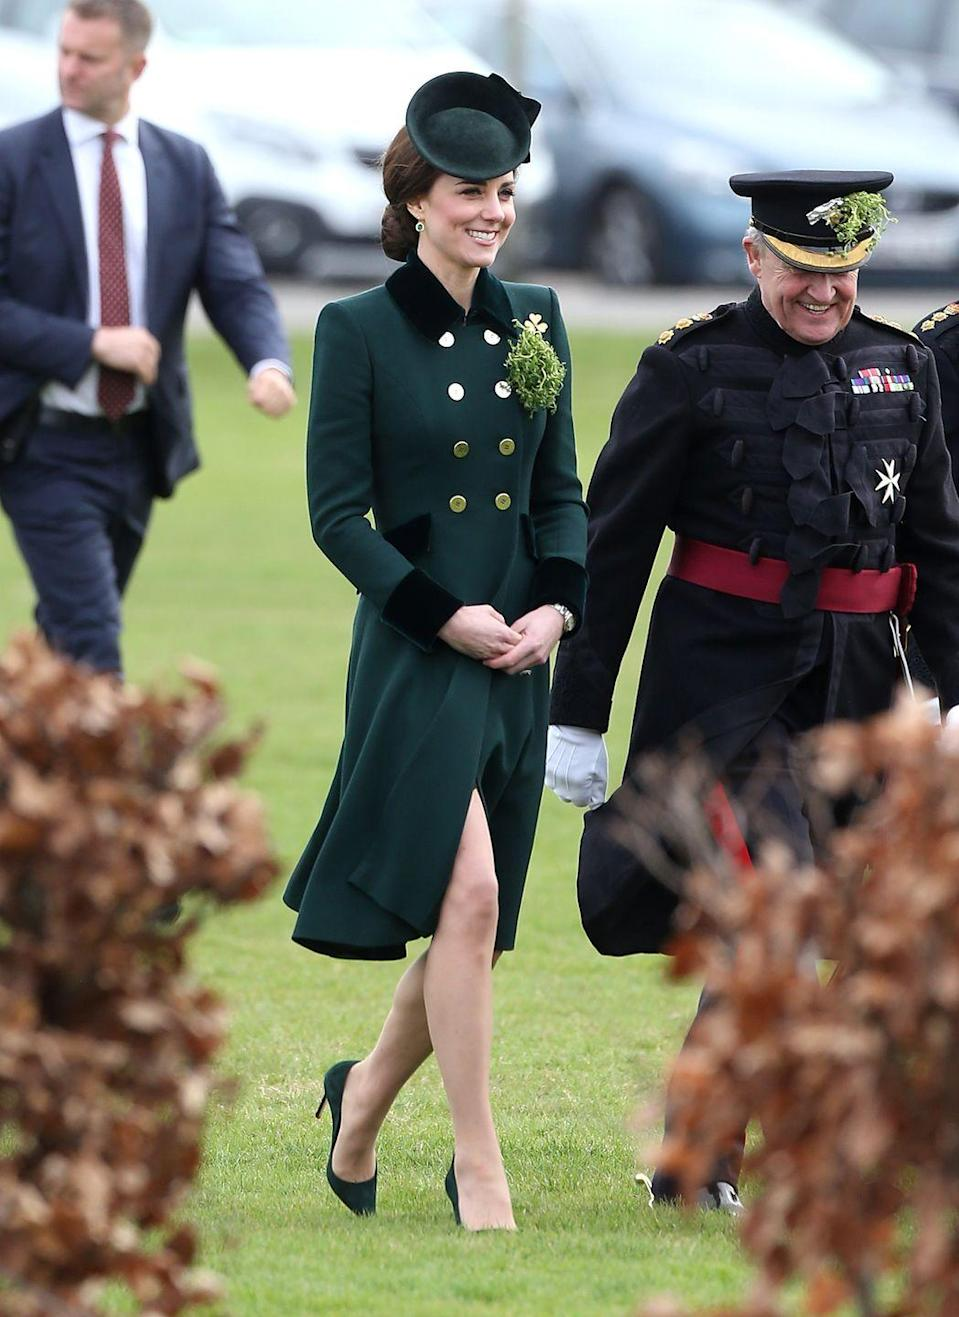 <p>Duchess Catherine dons a green coat from Catherine Walker at the annual St. Patrick's Day parade in London. She accessorized with an Irish Guards brooch to celebrate the day of good fortune.</p>